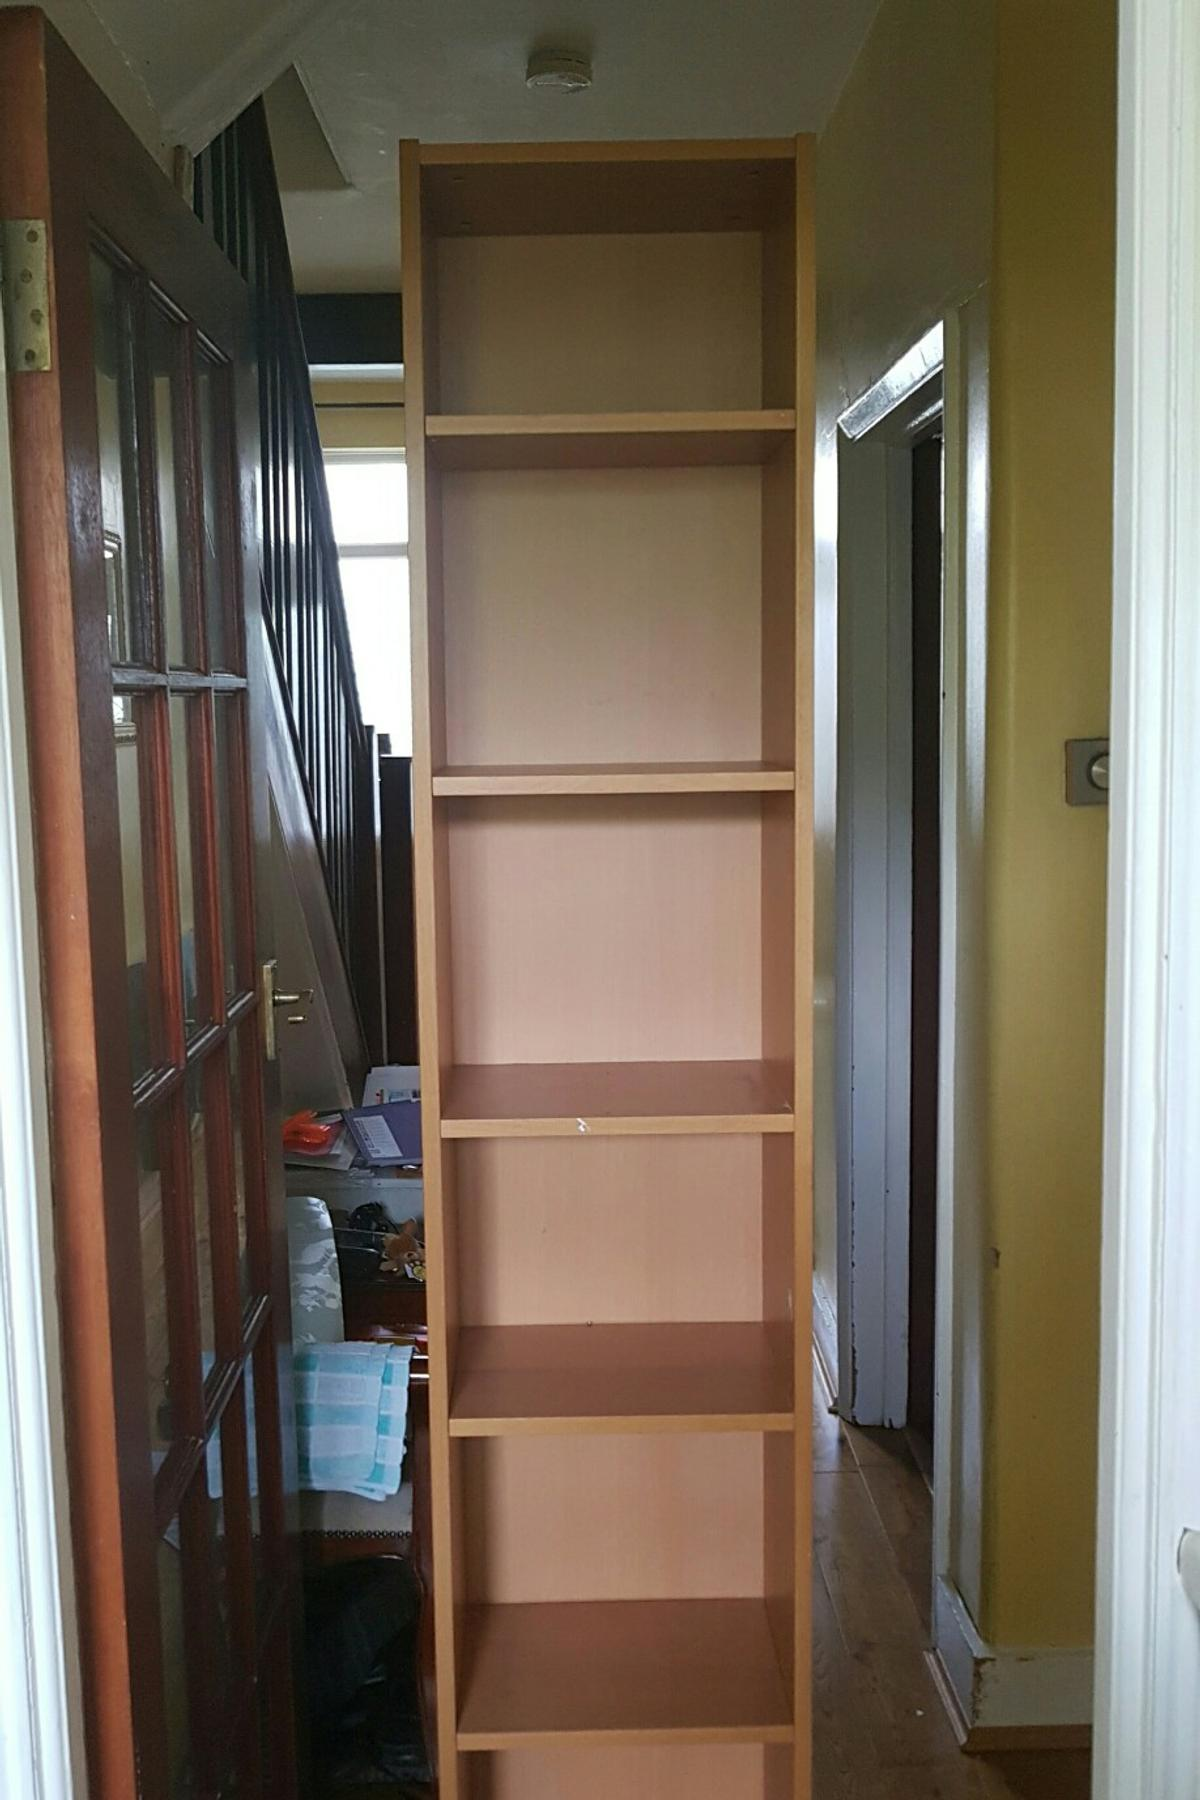 Ikea Billy Bookcase In Cr7 Heath For 20 00 For Sale Shpock